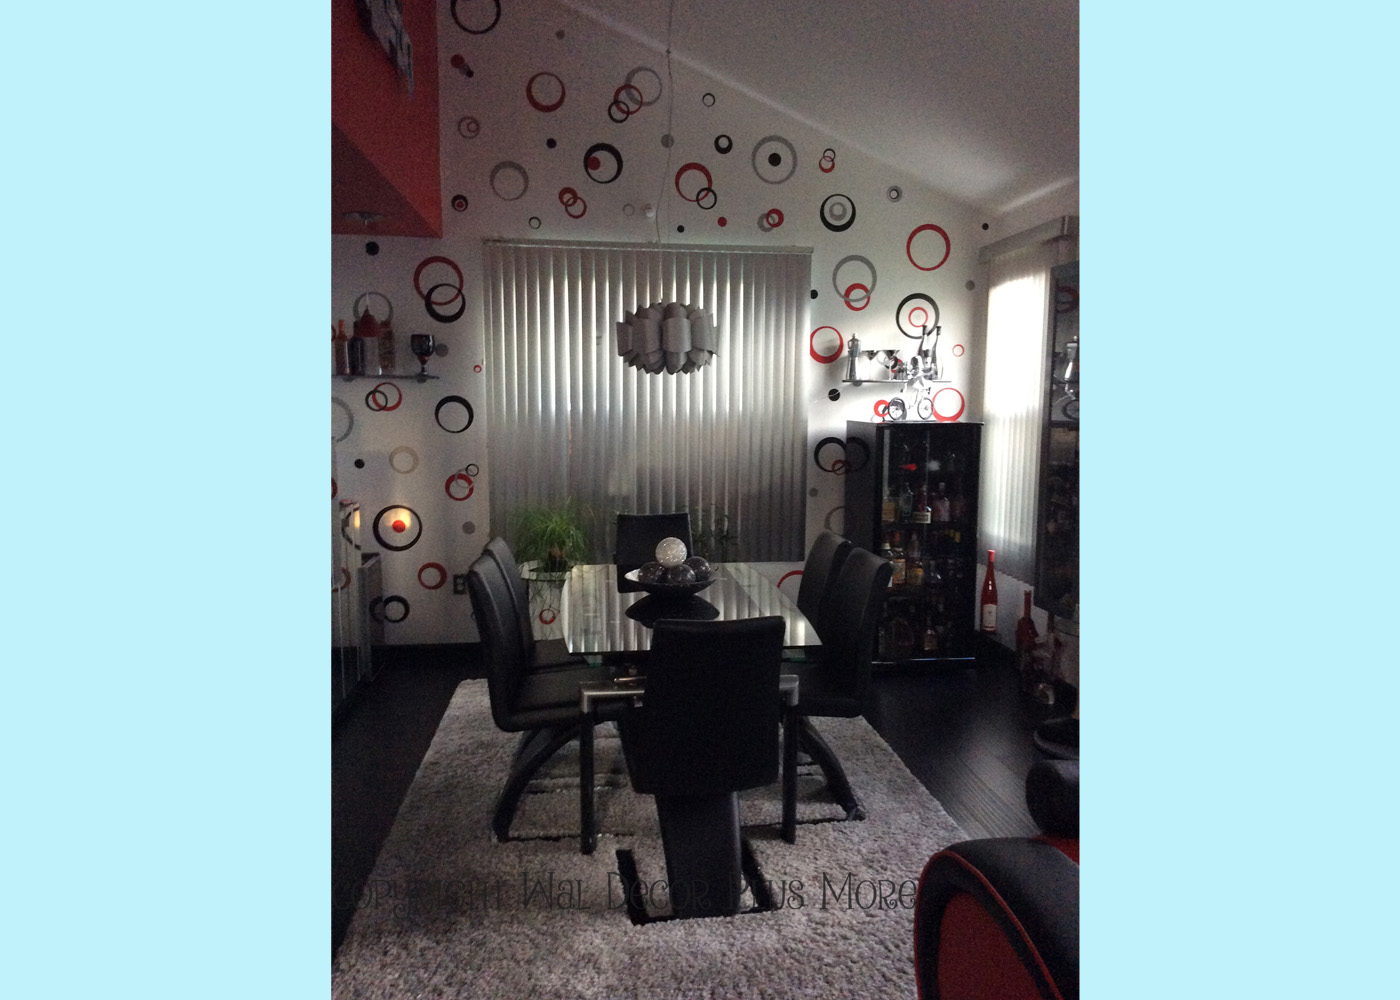 circles-and-dots-wall-decal-vinyl-stickers-in-elegant-dining-room-cherry-red-gray-black.jpg